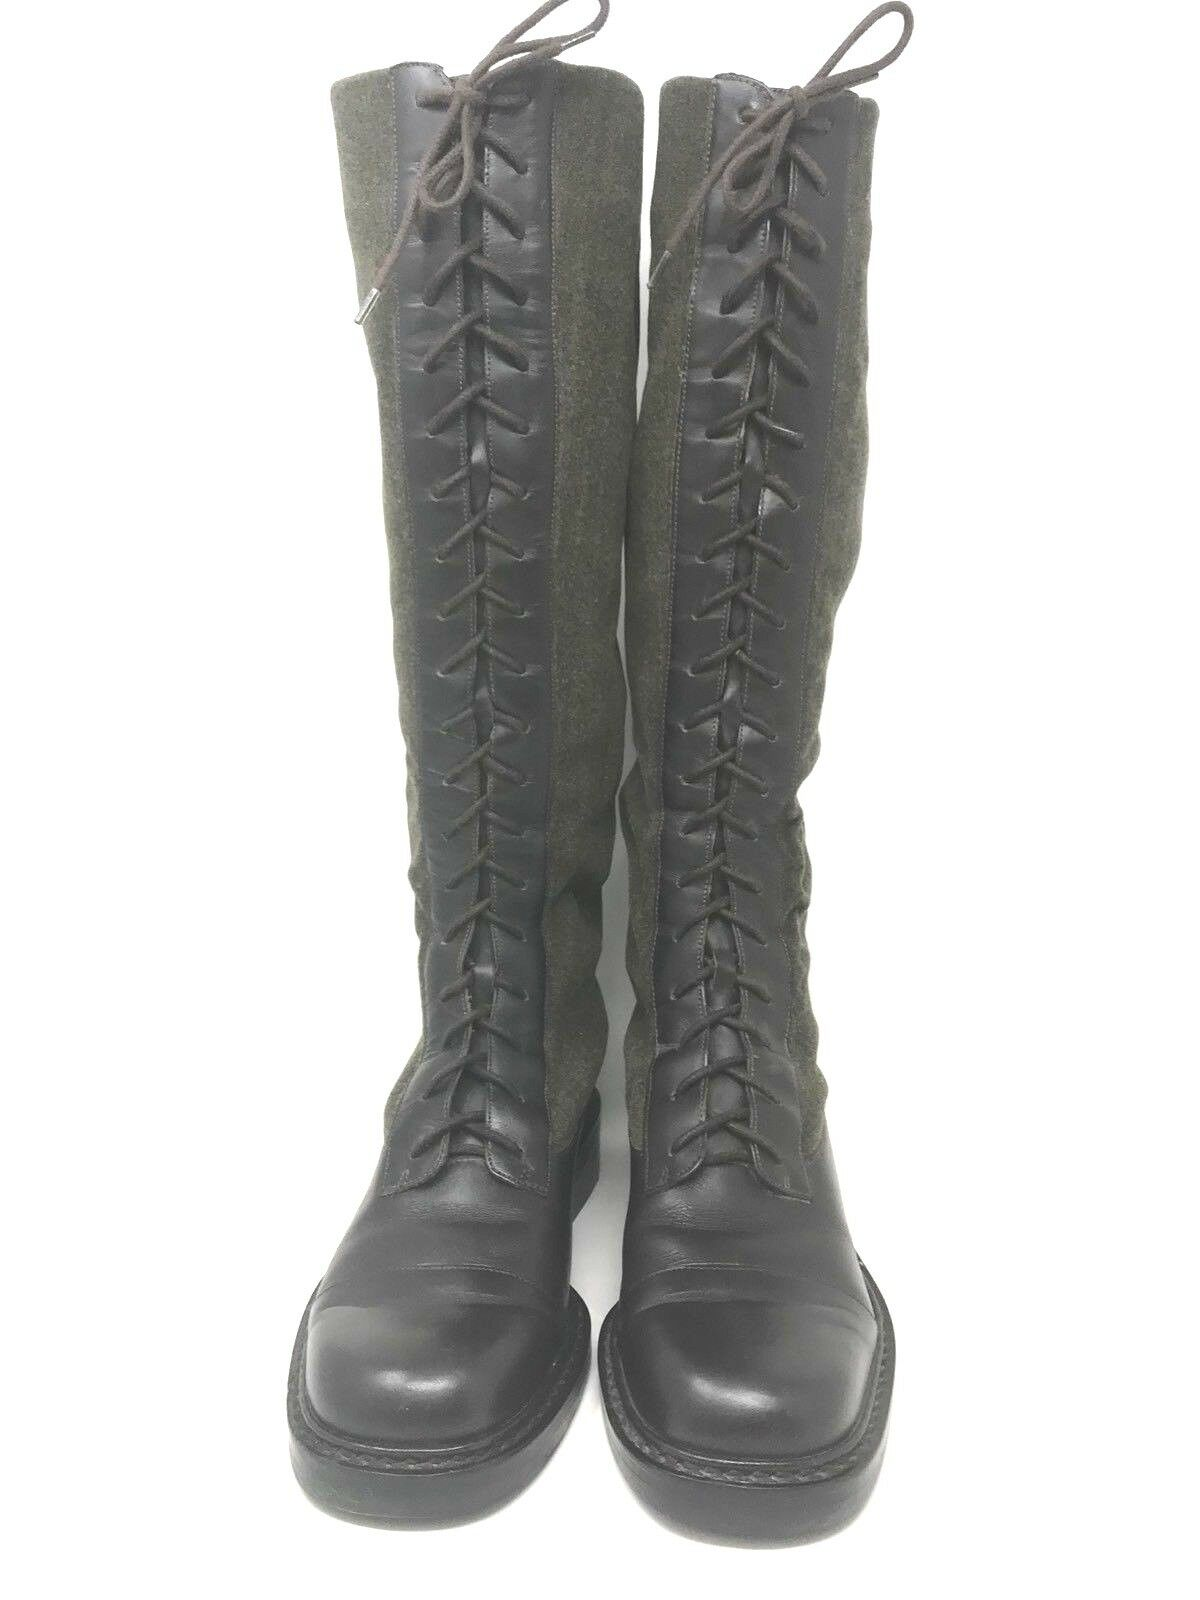 Lauren Ralph Lauren braun Leather and Wool Lace Up 19 Eye Knee High Stiefel 6.5 B